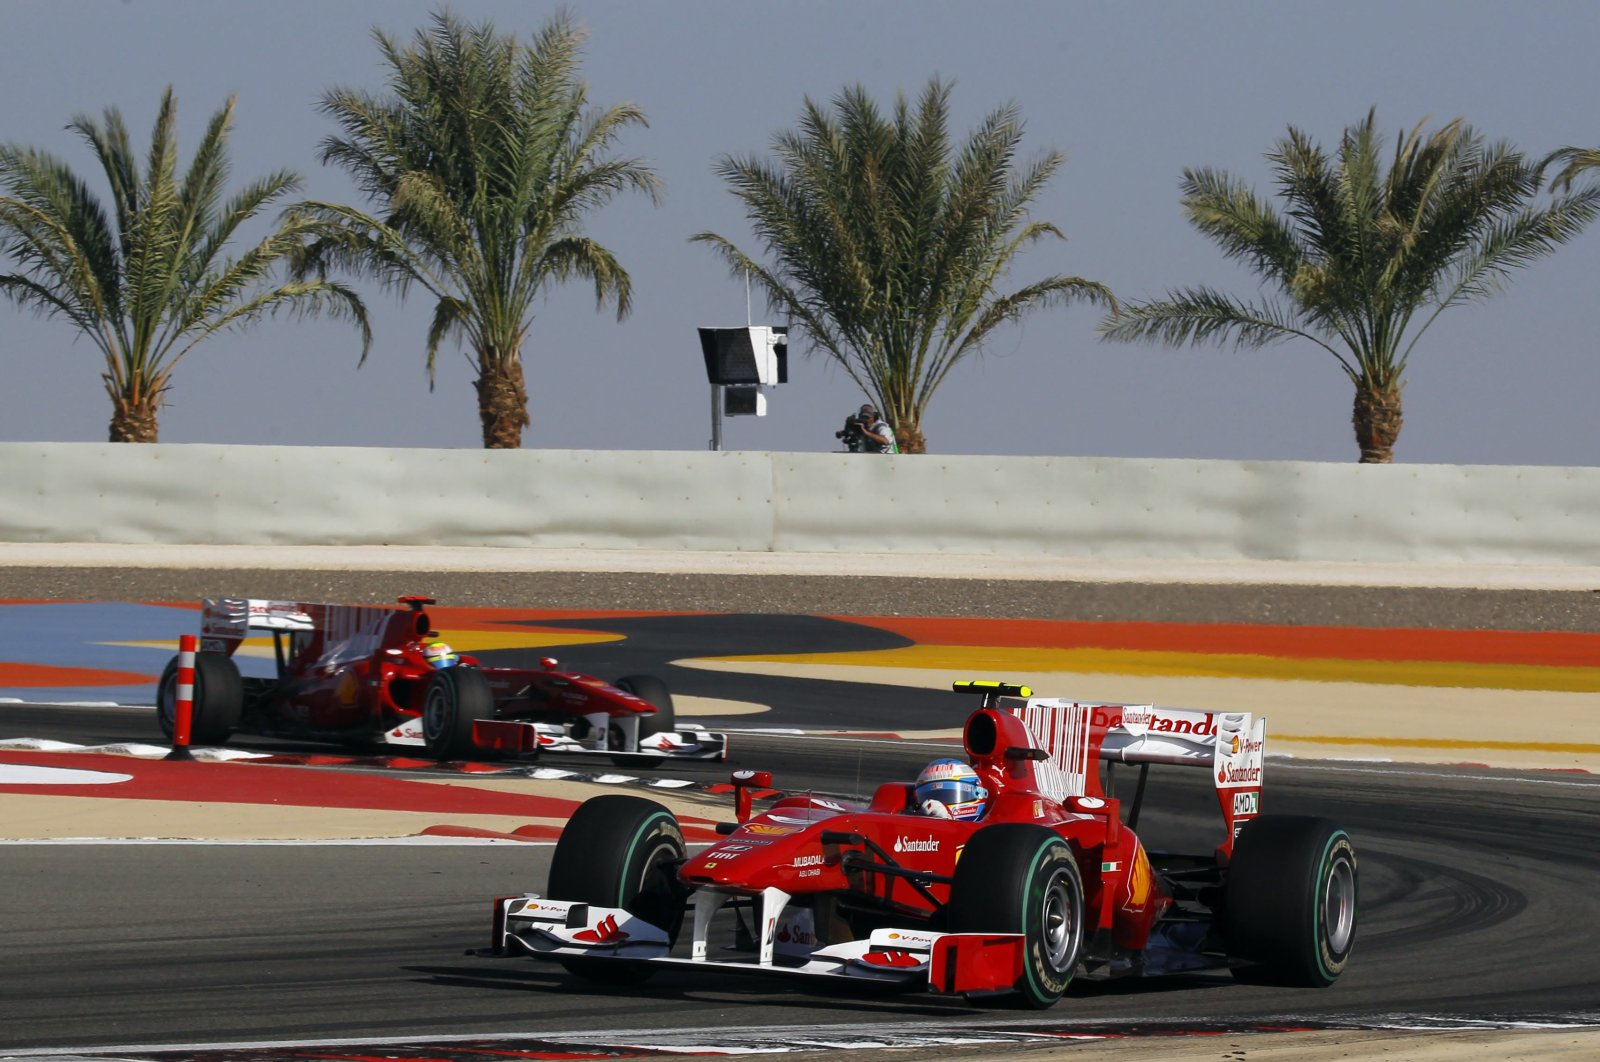 Ferrari Formula One driver Fernando Alonso of Spain leads teammate Felipe Massa of Brazil during the Bahrain F1 Grand Prix at Sakhir circuit in Manama March 14, 2010. (Reuters File Photo)